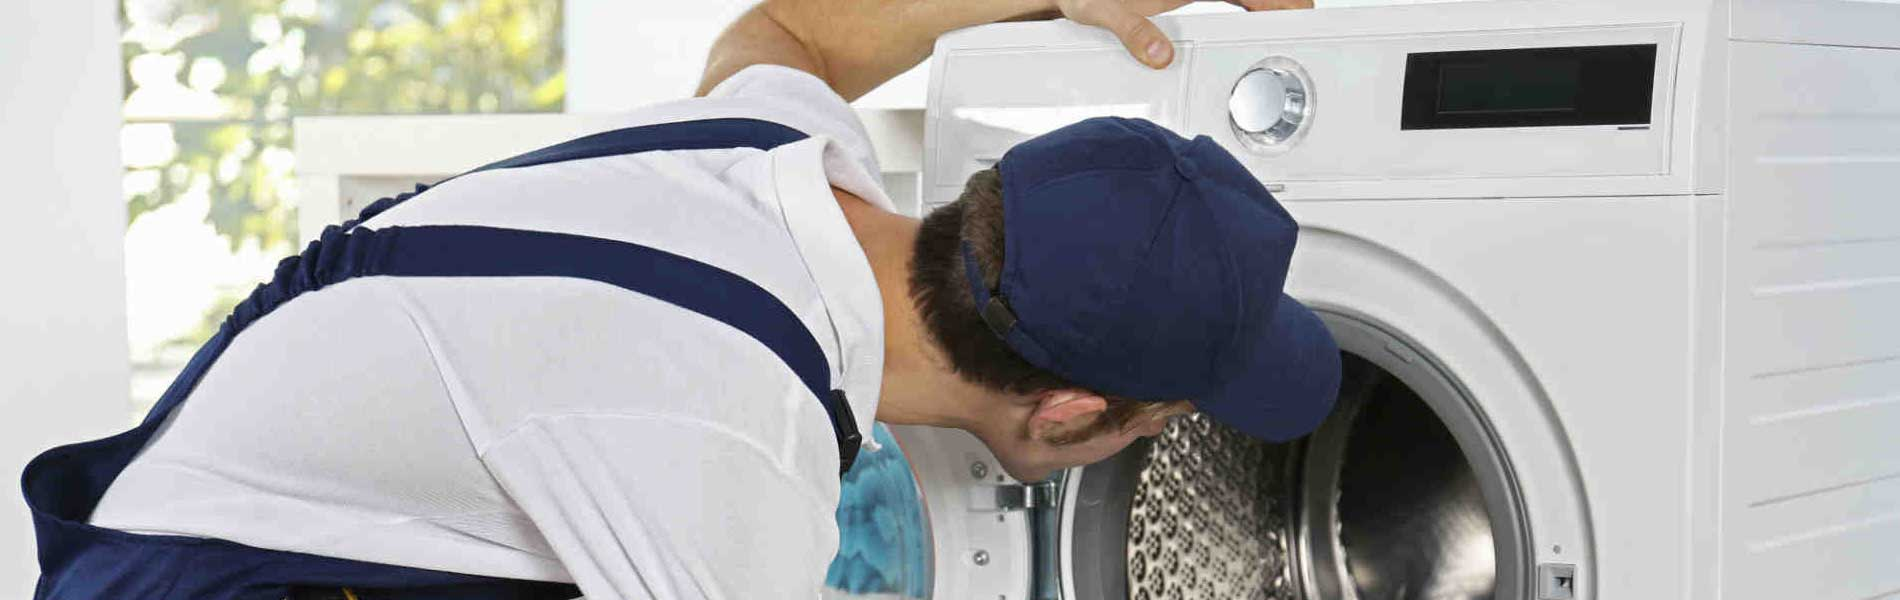 Godrej Washing Machine Repair in Surapet